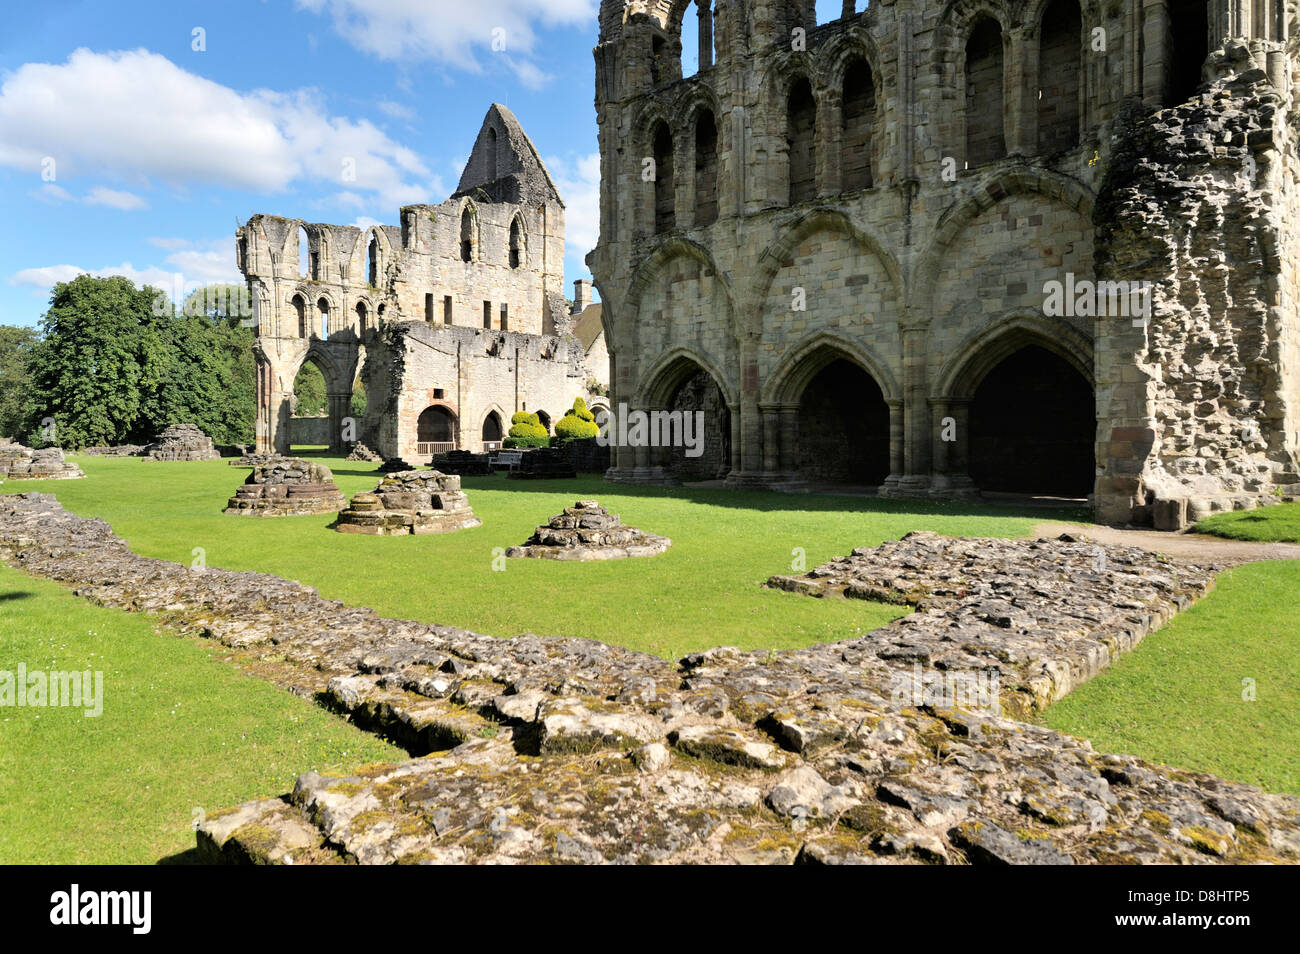 Wenlock Priory, Much Wenlock, Shropshire, England. Across the west end of the 12 C Cluniac priory church to the - Stock Image